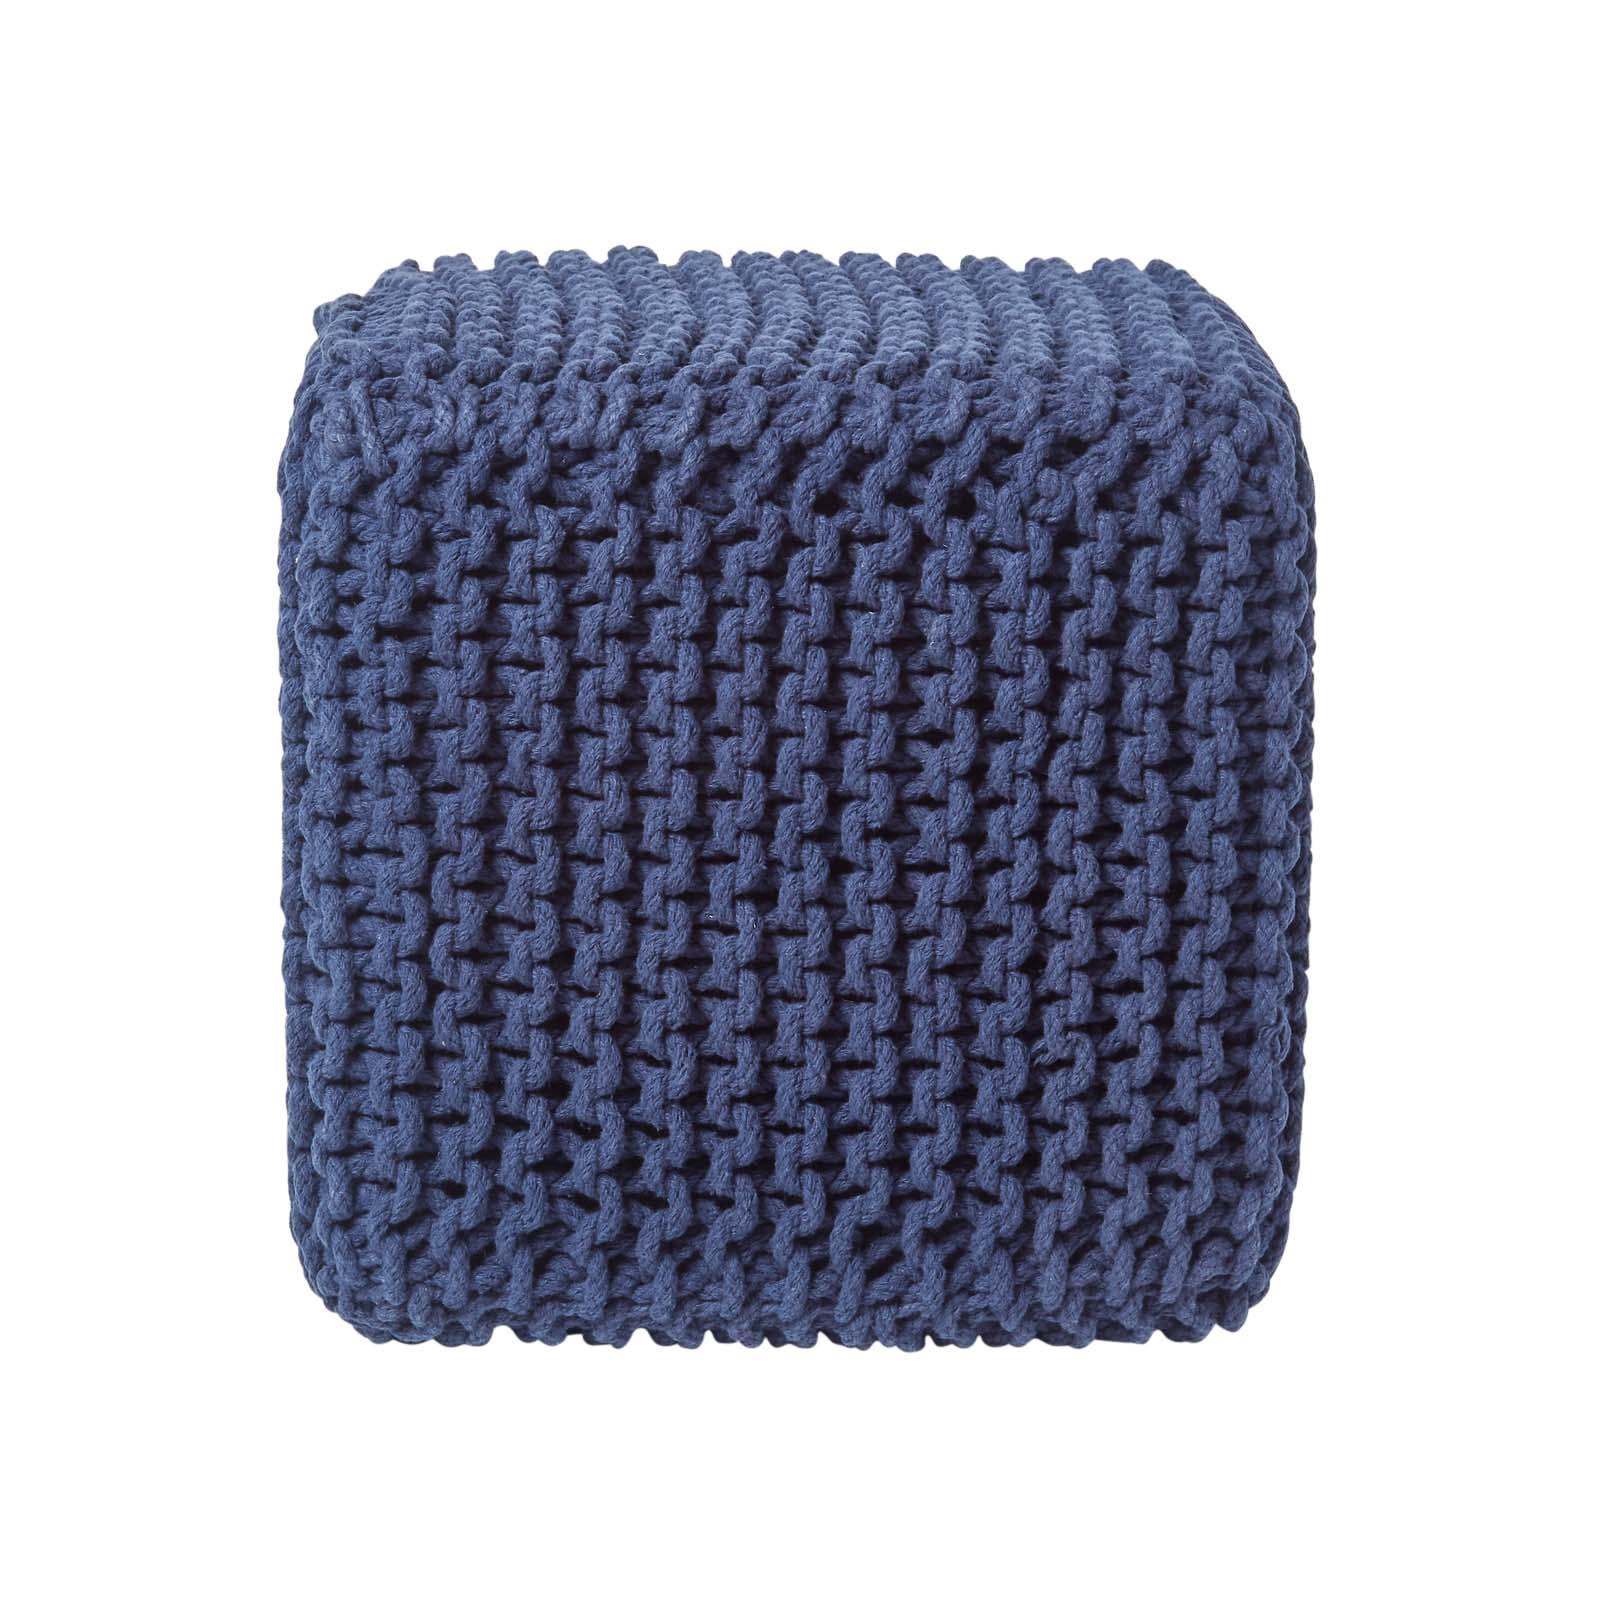 Hand-Knitted-100-Cotton-Pouffes-Round-Sphere-Or-Cube-Square-Chunky-Footstools thumbnail 104